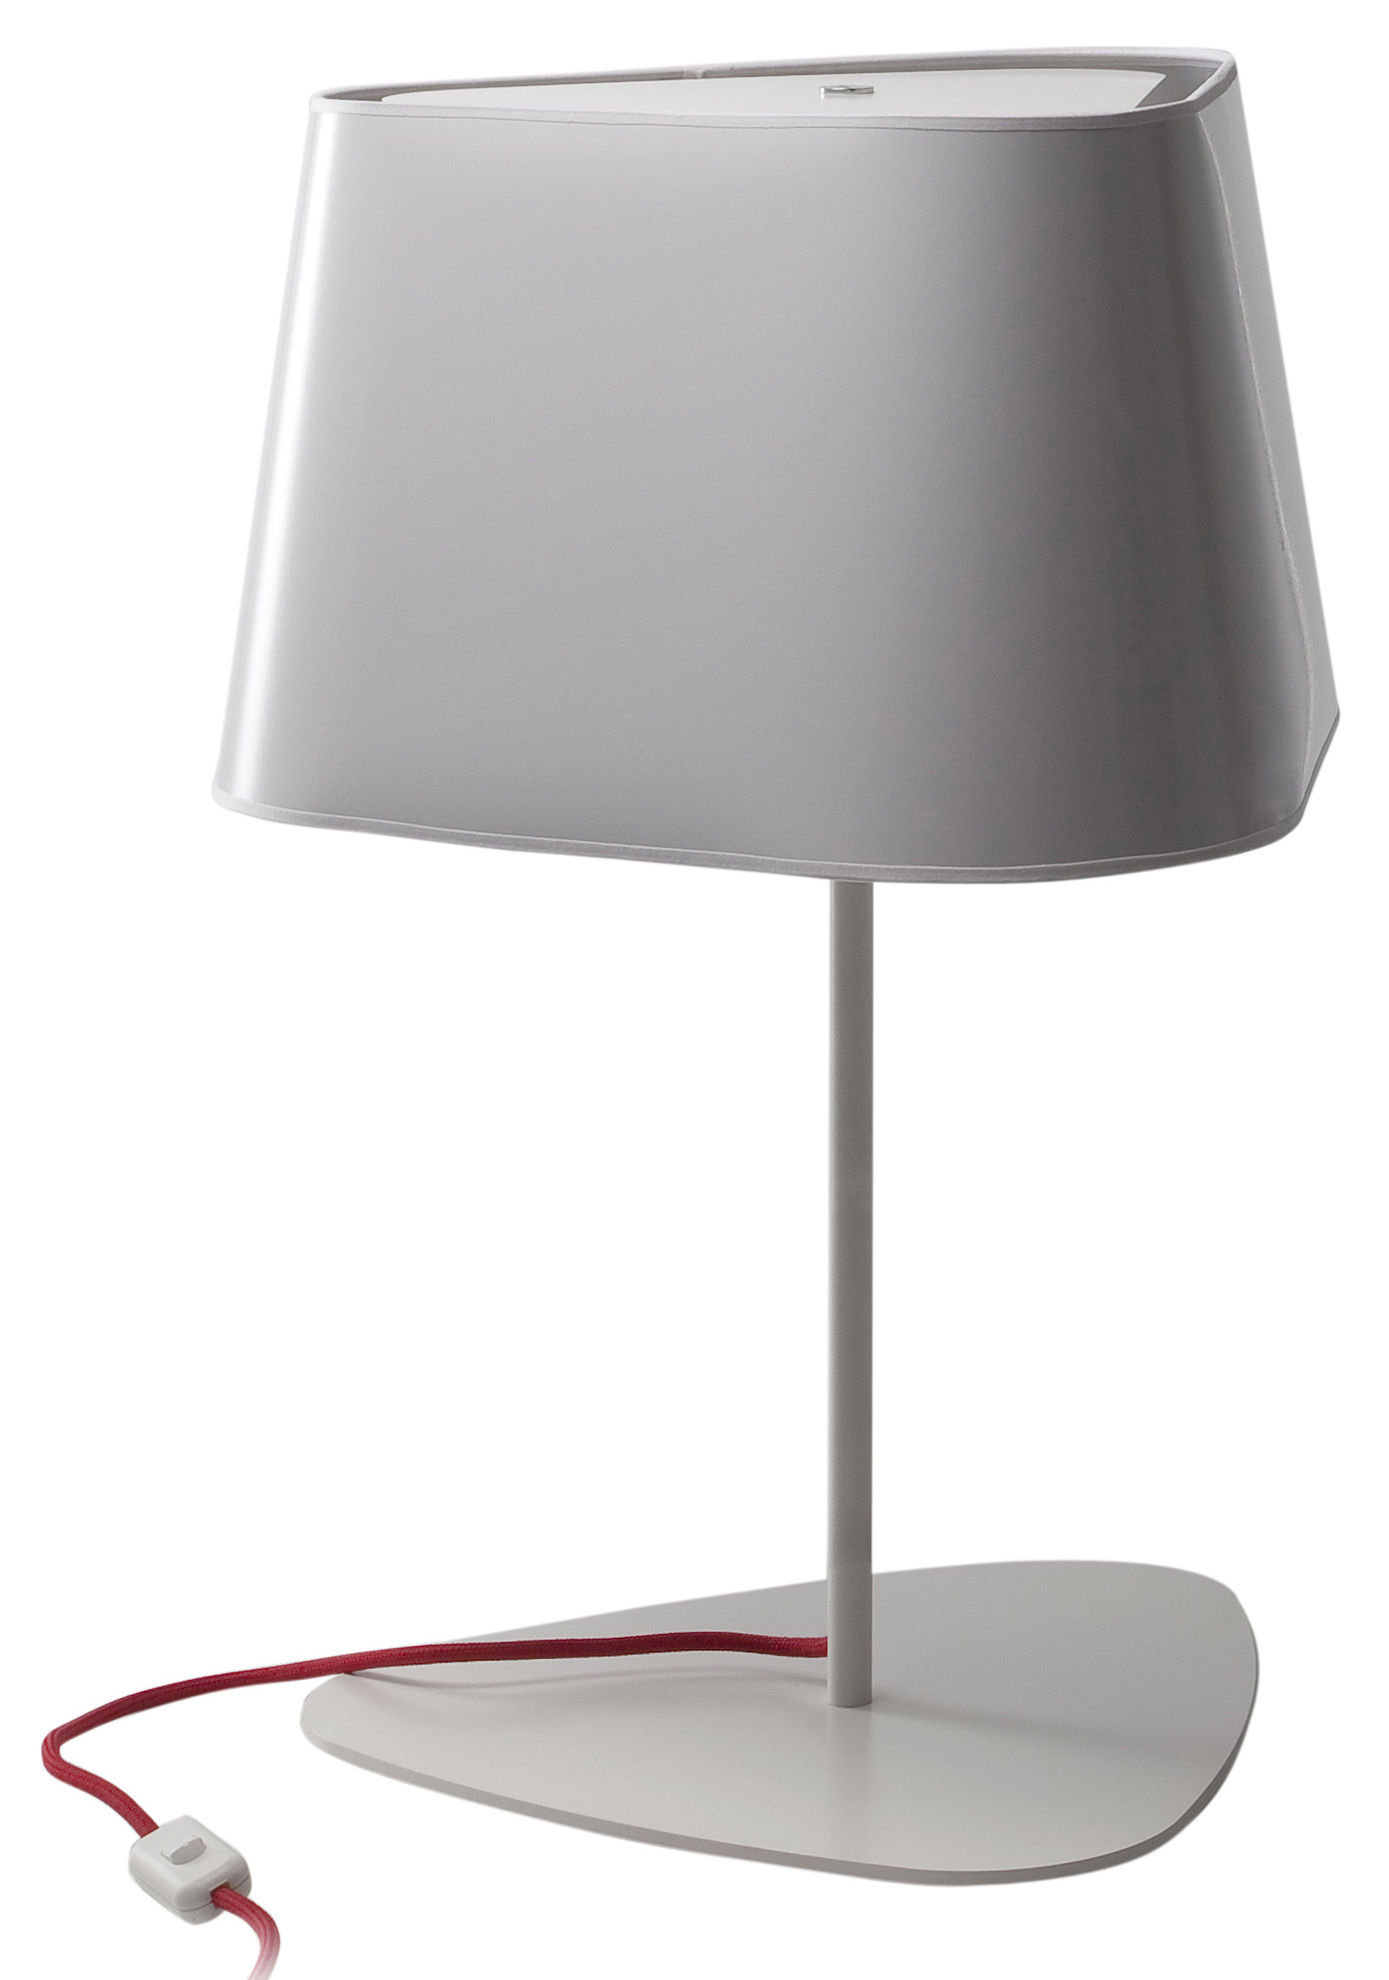 Grand nuage table lamp lacquered white silver interior for Design table lamp giffy 17 7